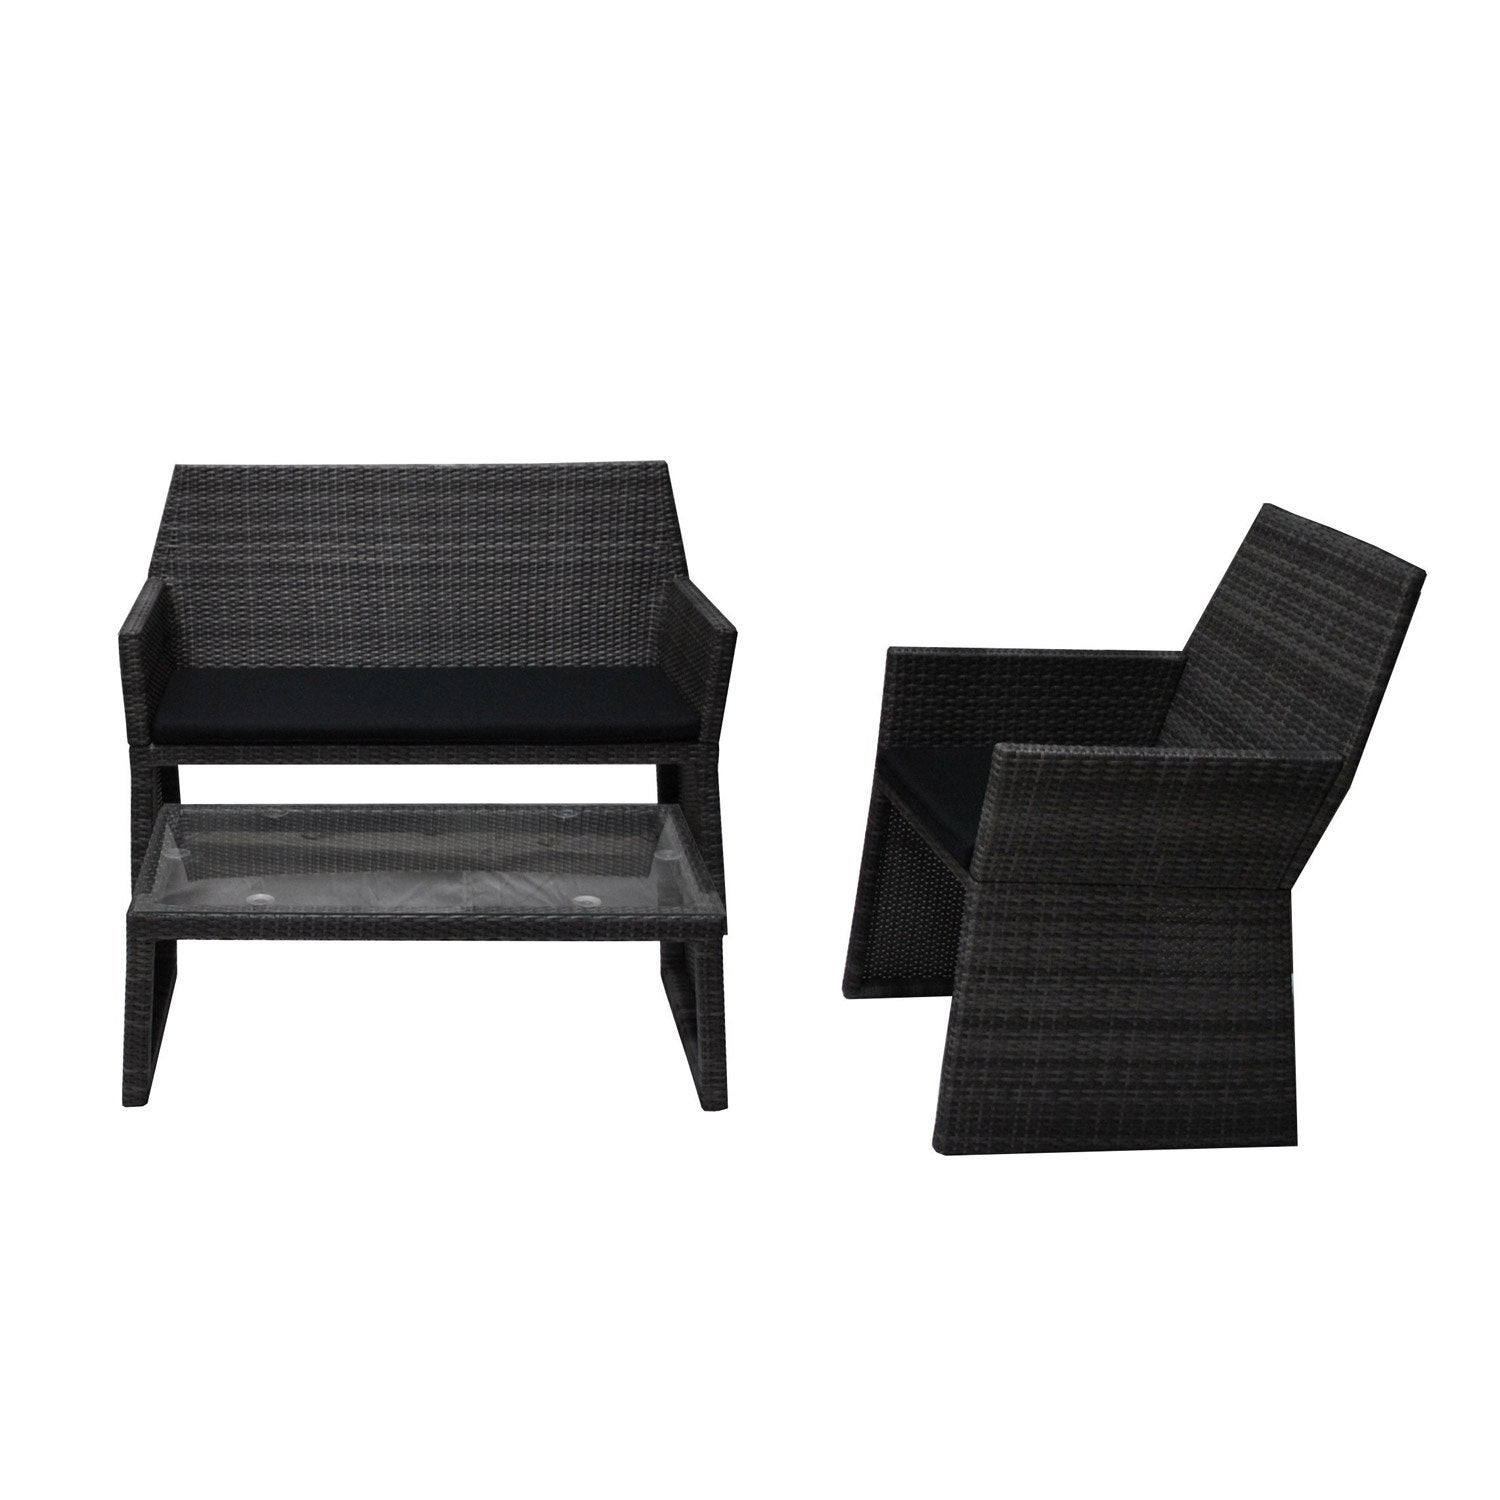 achat tonnelle de jardin pas cher. Black Bedroom Furniture Sets. Home Design Ideas